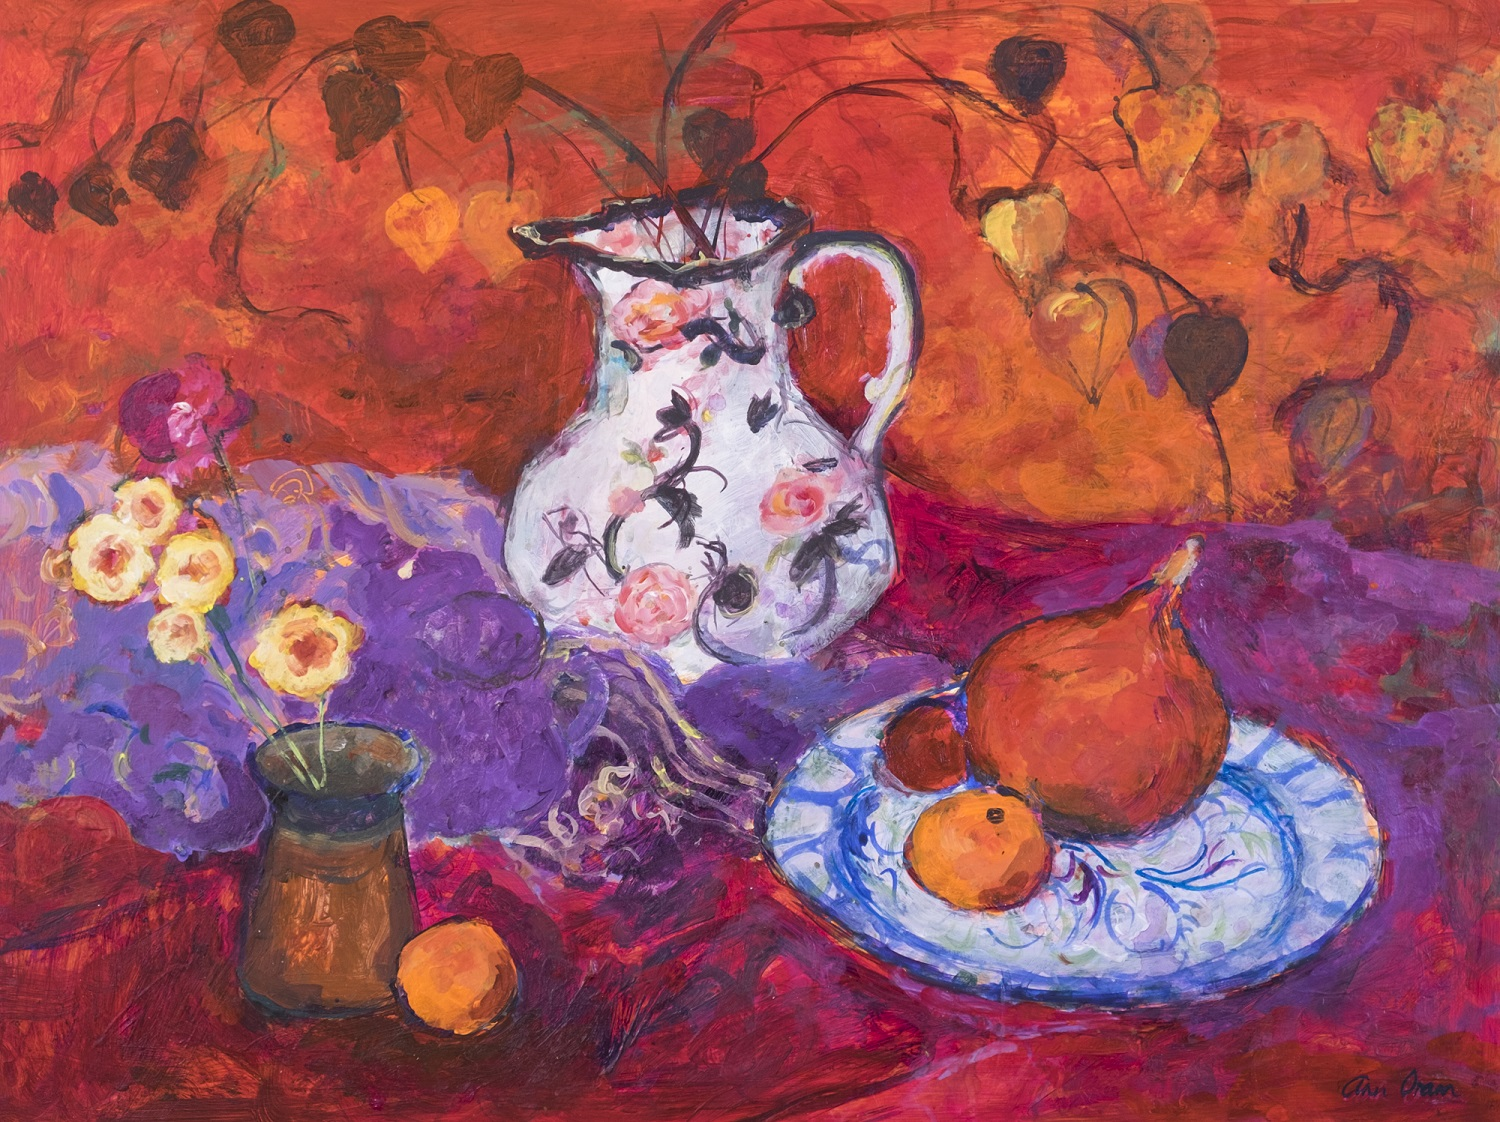 'Red Still Life with Chinese Lanterns' Ann Oram Acrylic on Board, 46x61cm, 2017